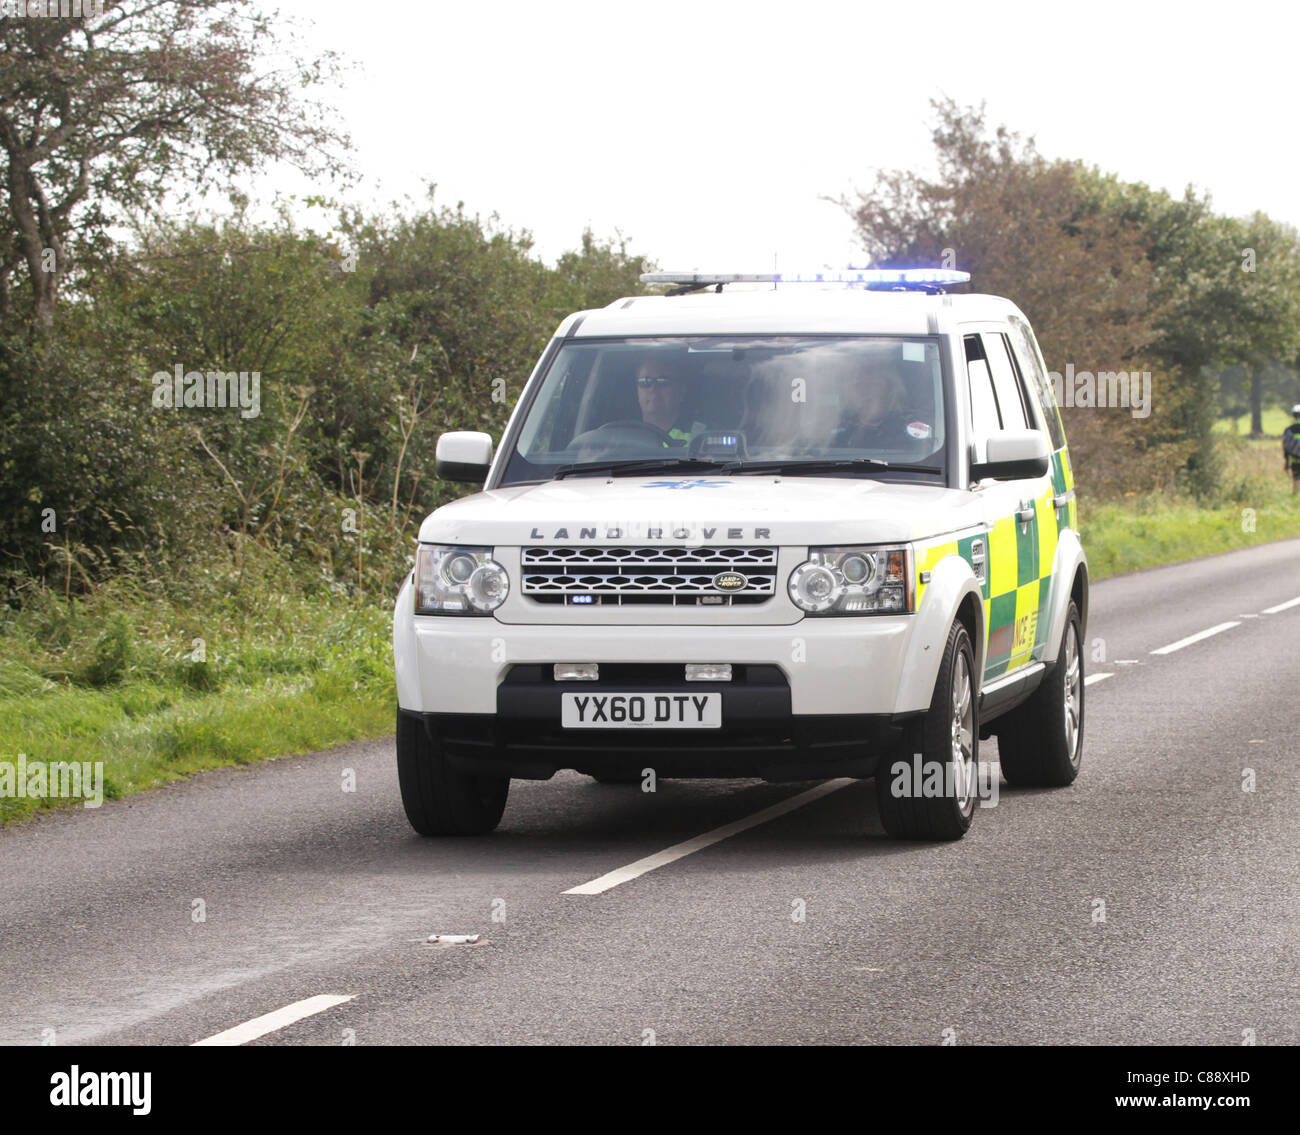 Paramedic 4x4 fast response vehicle - Stock Image